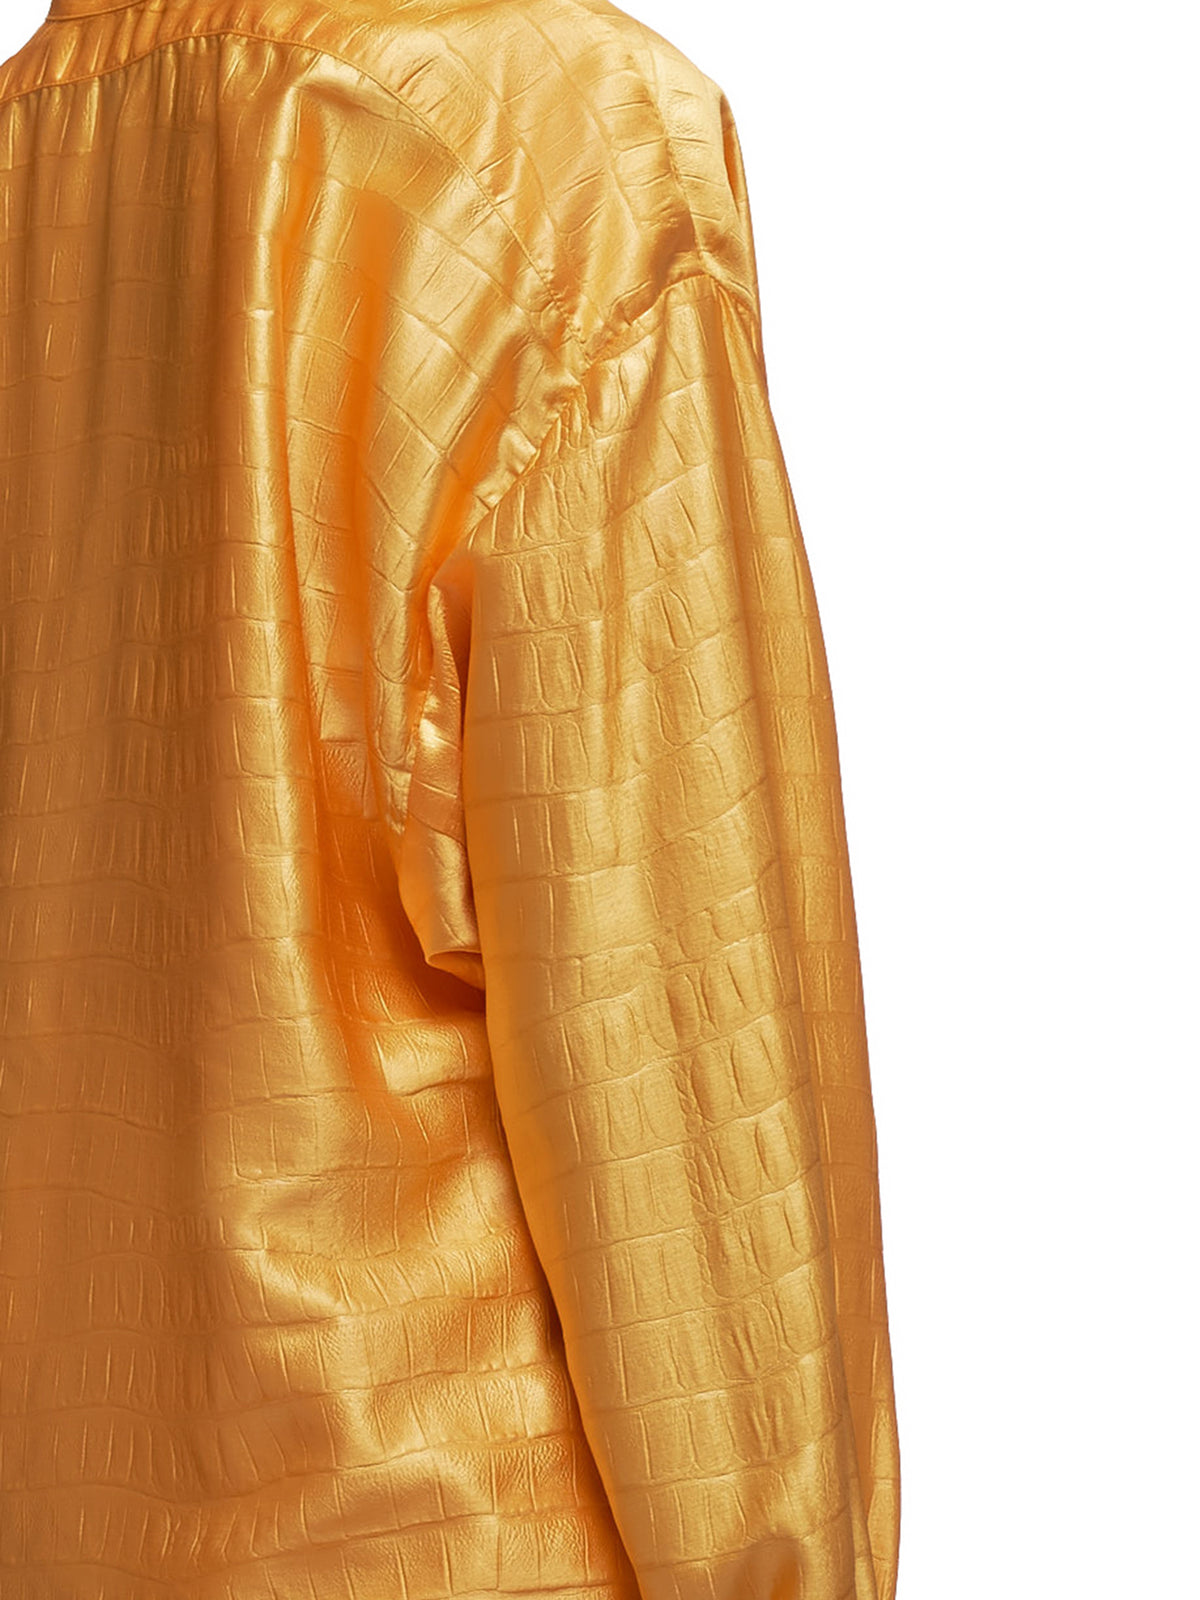 Satin Azra Embossed Tunic Shirt (16IA3108-APRICOT)